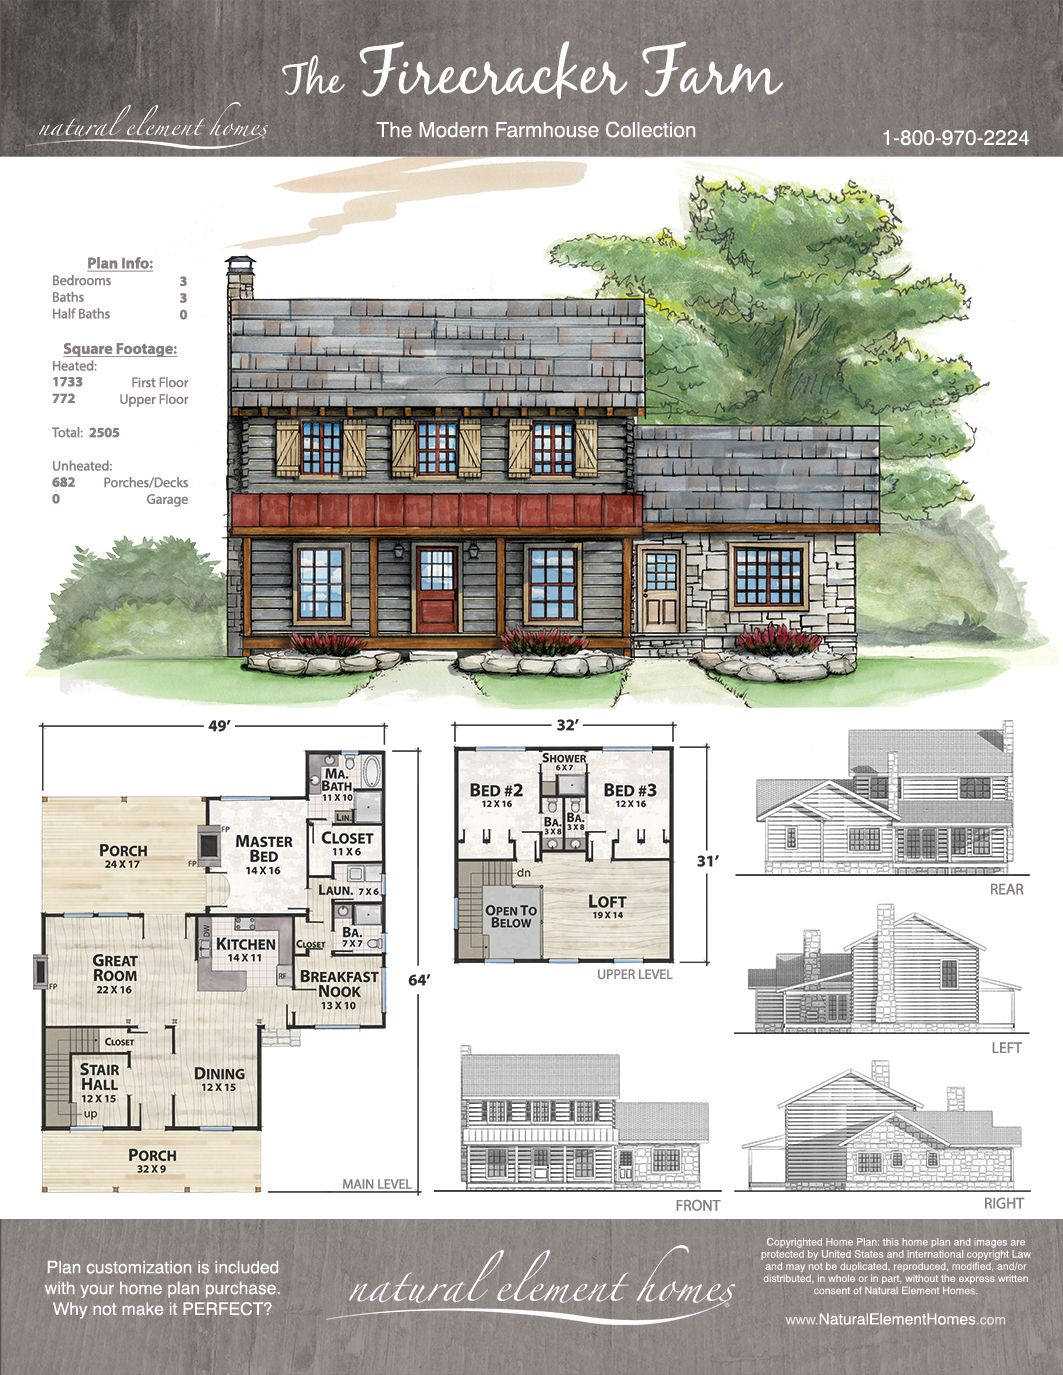 Firecracker farm natural element homes farmhouse